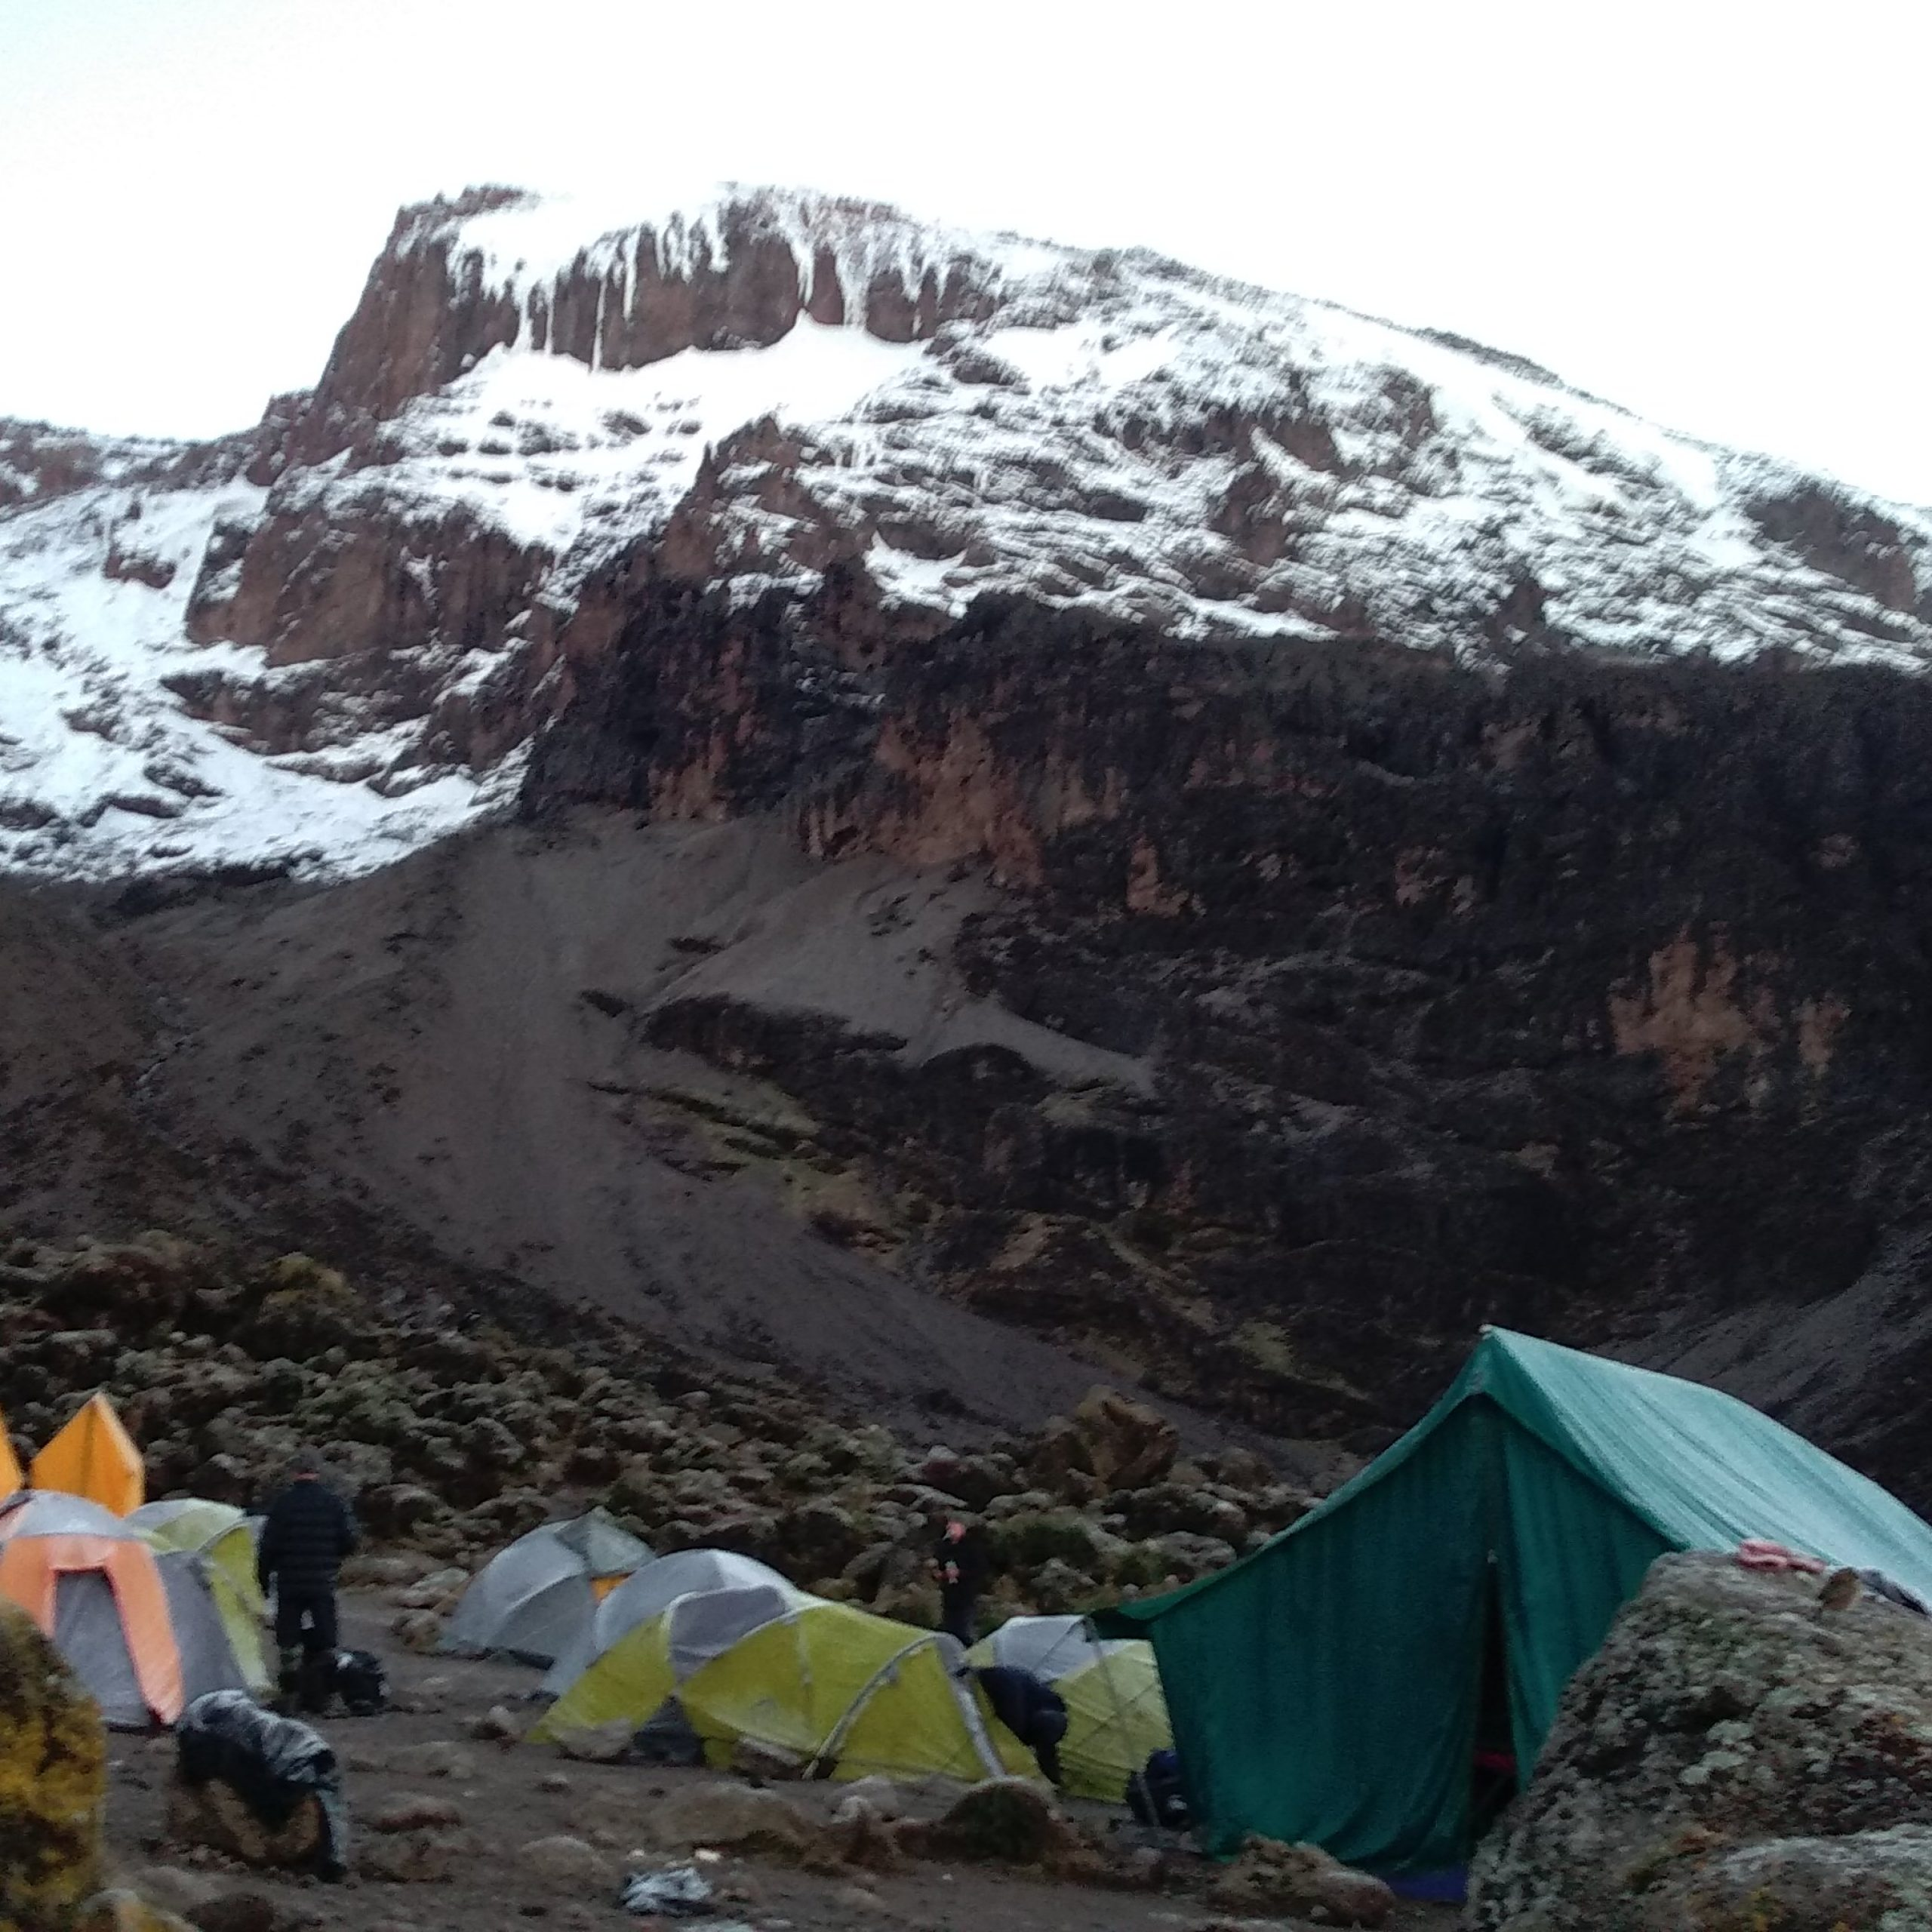 Day Four – Barranco Camp (3,950 m/12,960 ft)- Karanga Camp (4,040 m/13,255 ft)